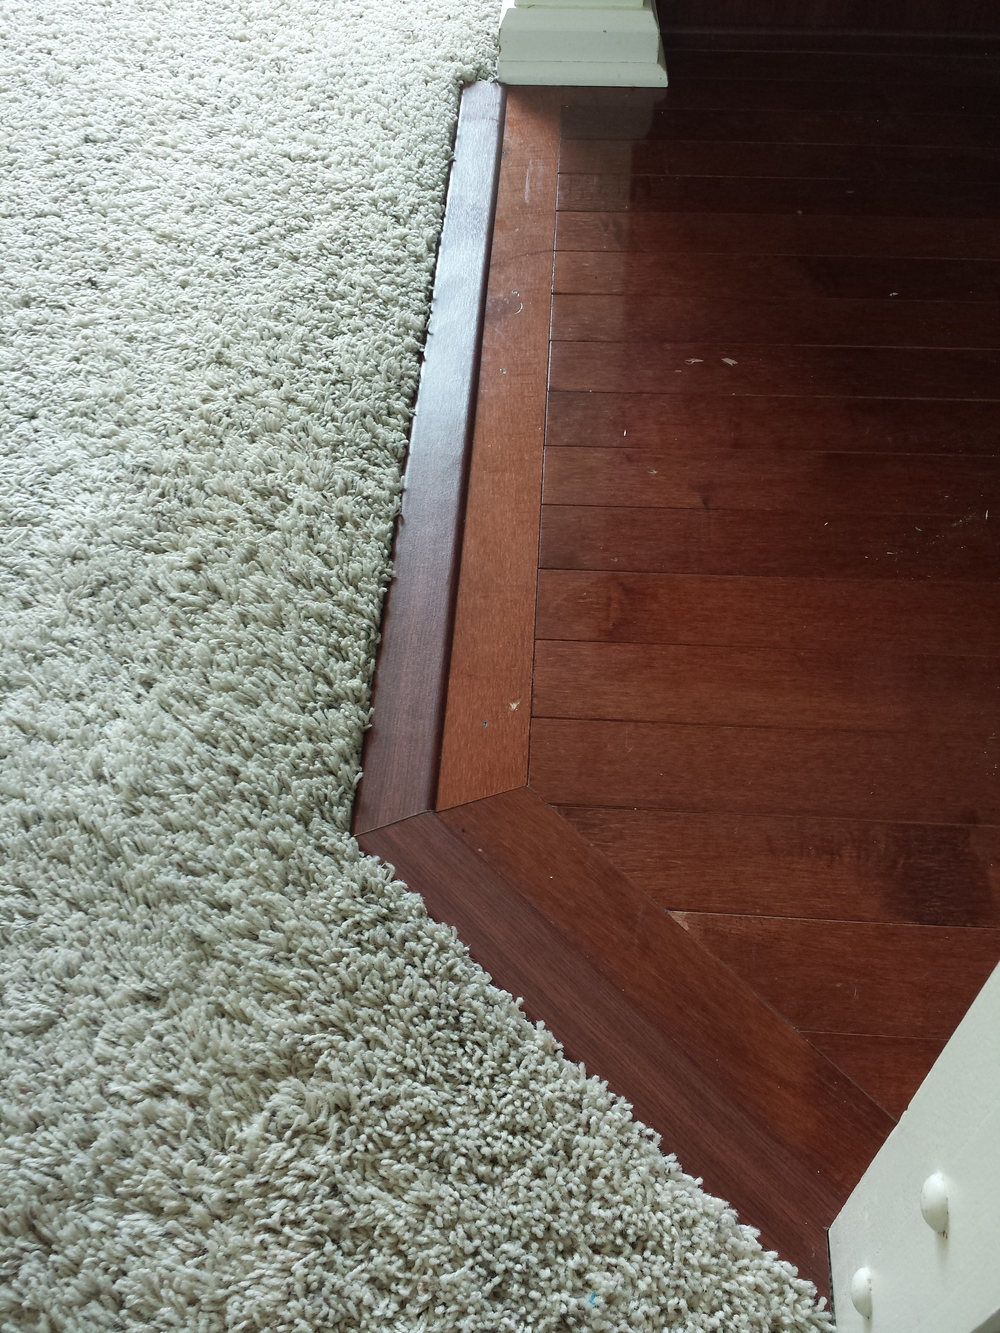 New carpet transition installed